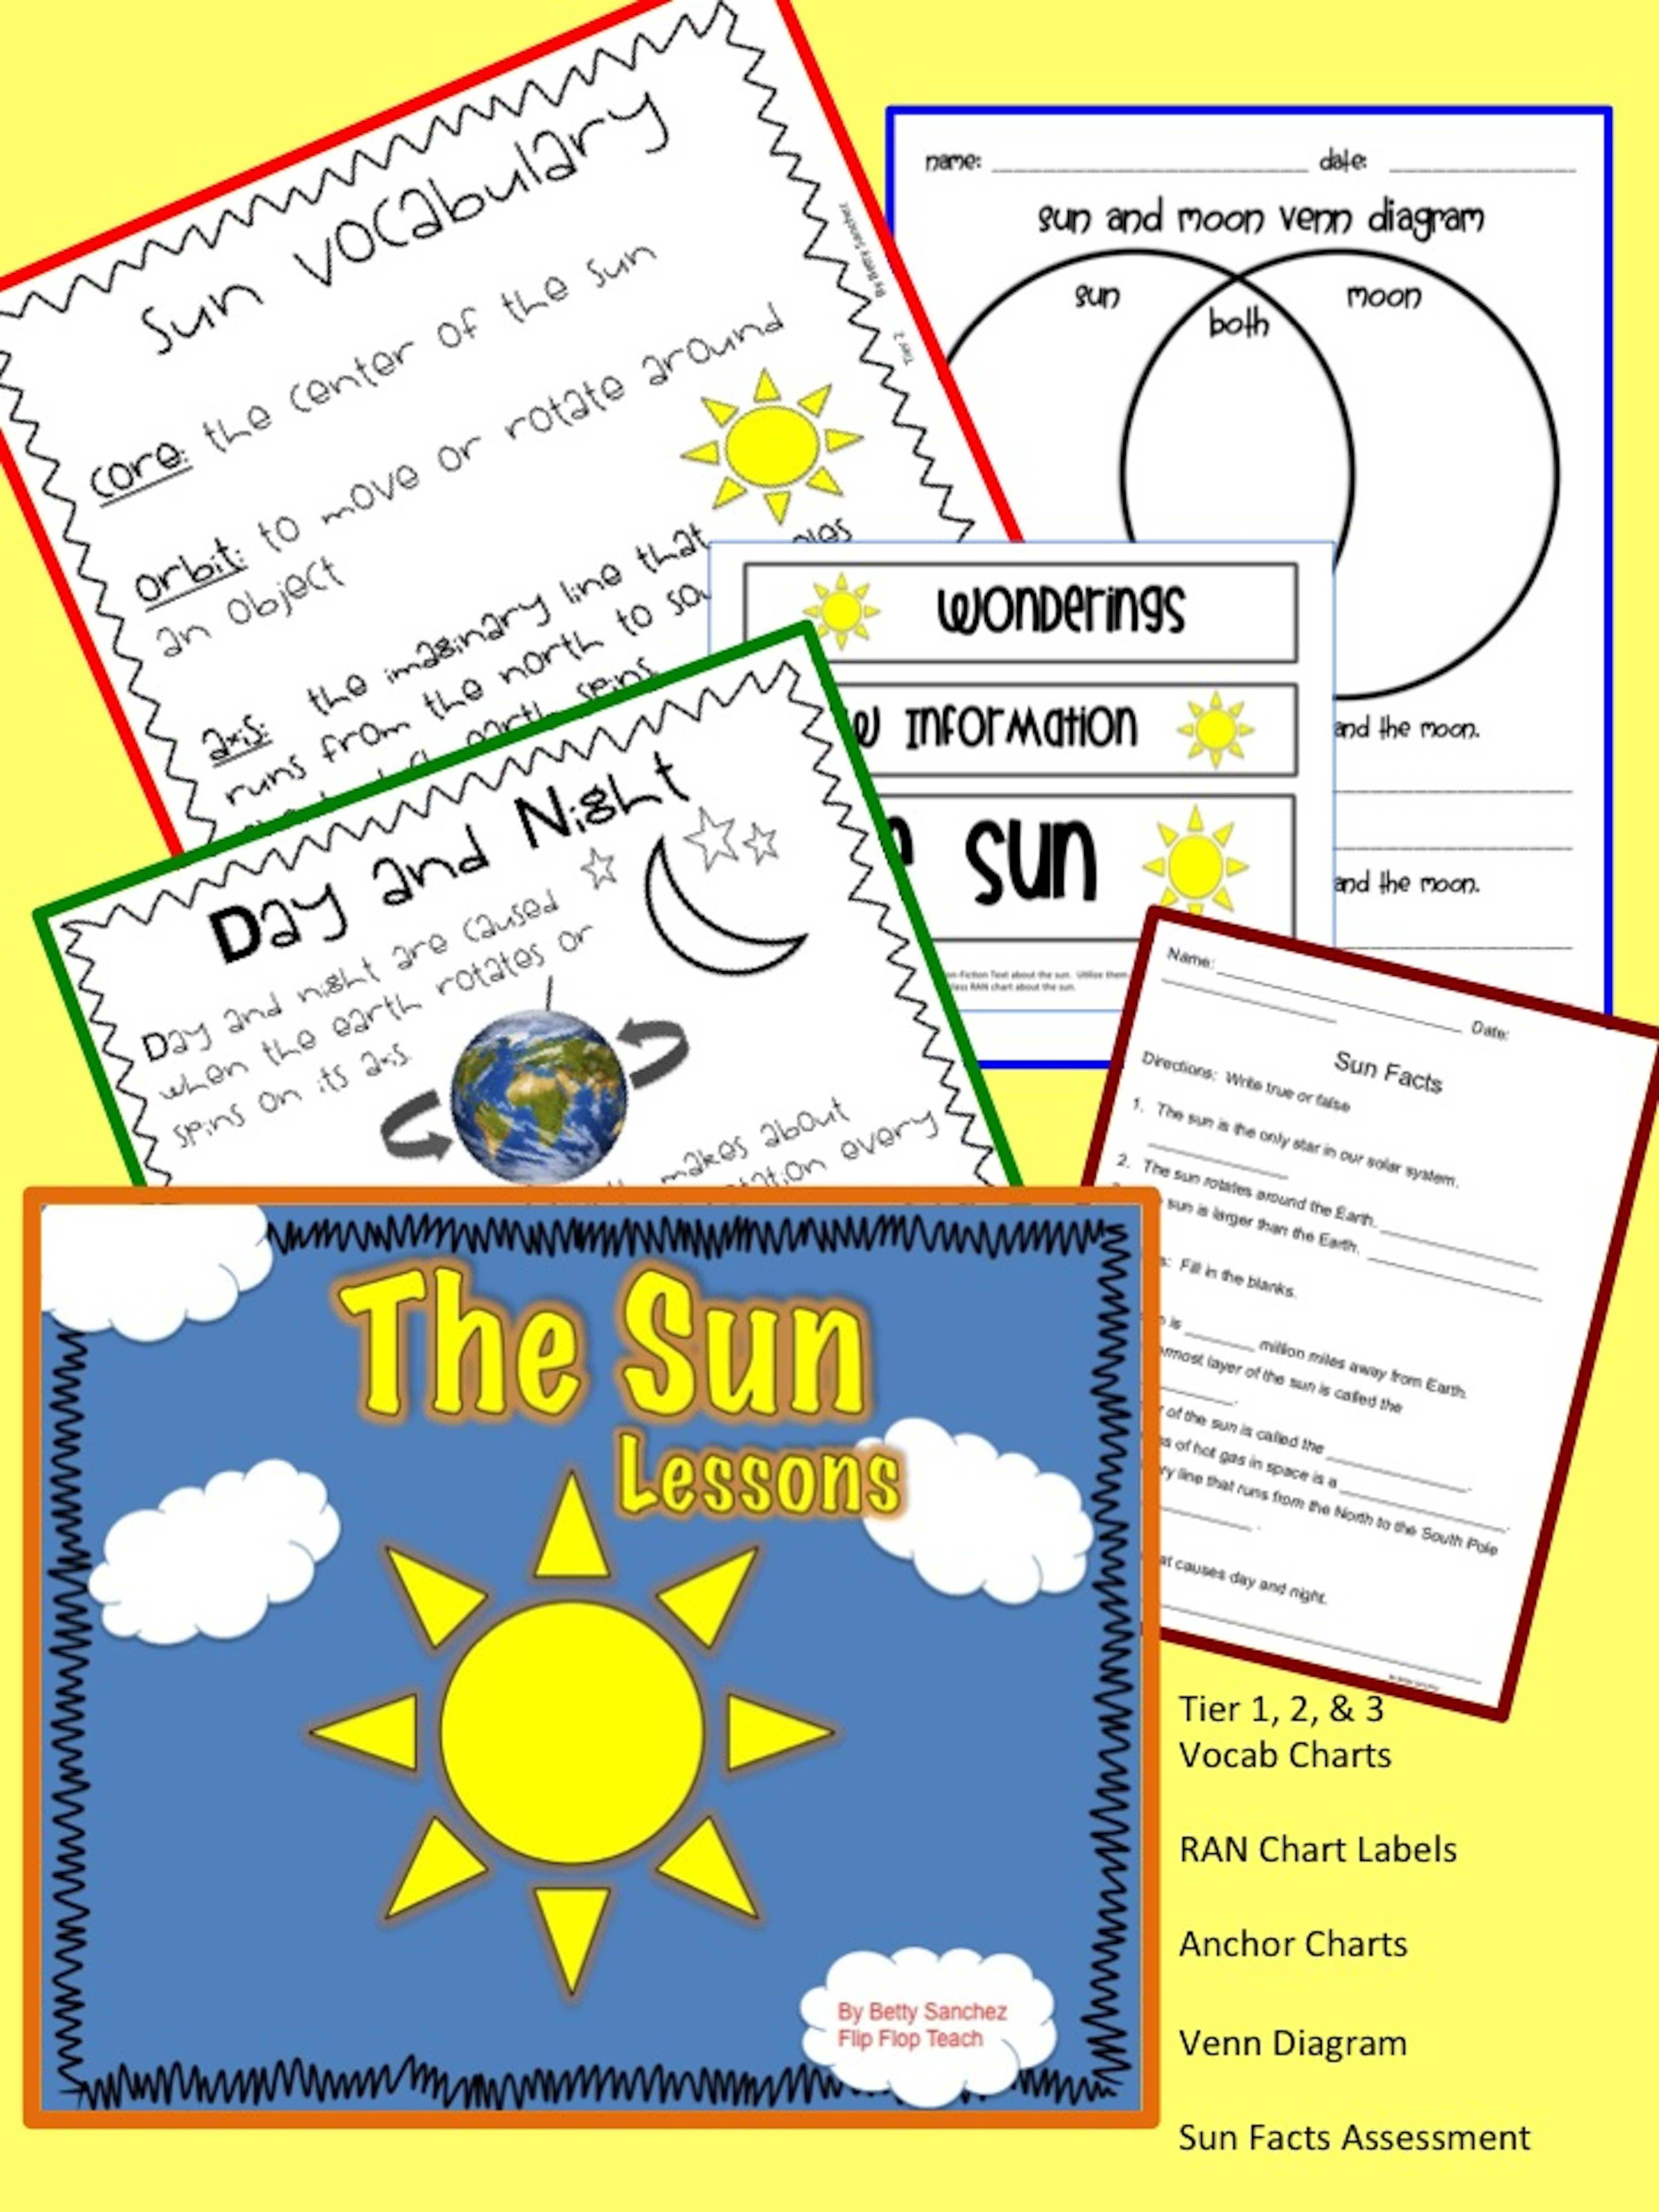 hight resolution of The Sun Lessons Common Core Aligned   Sun activity